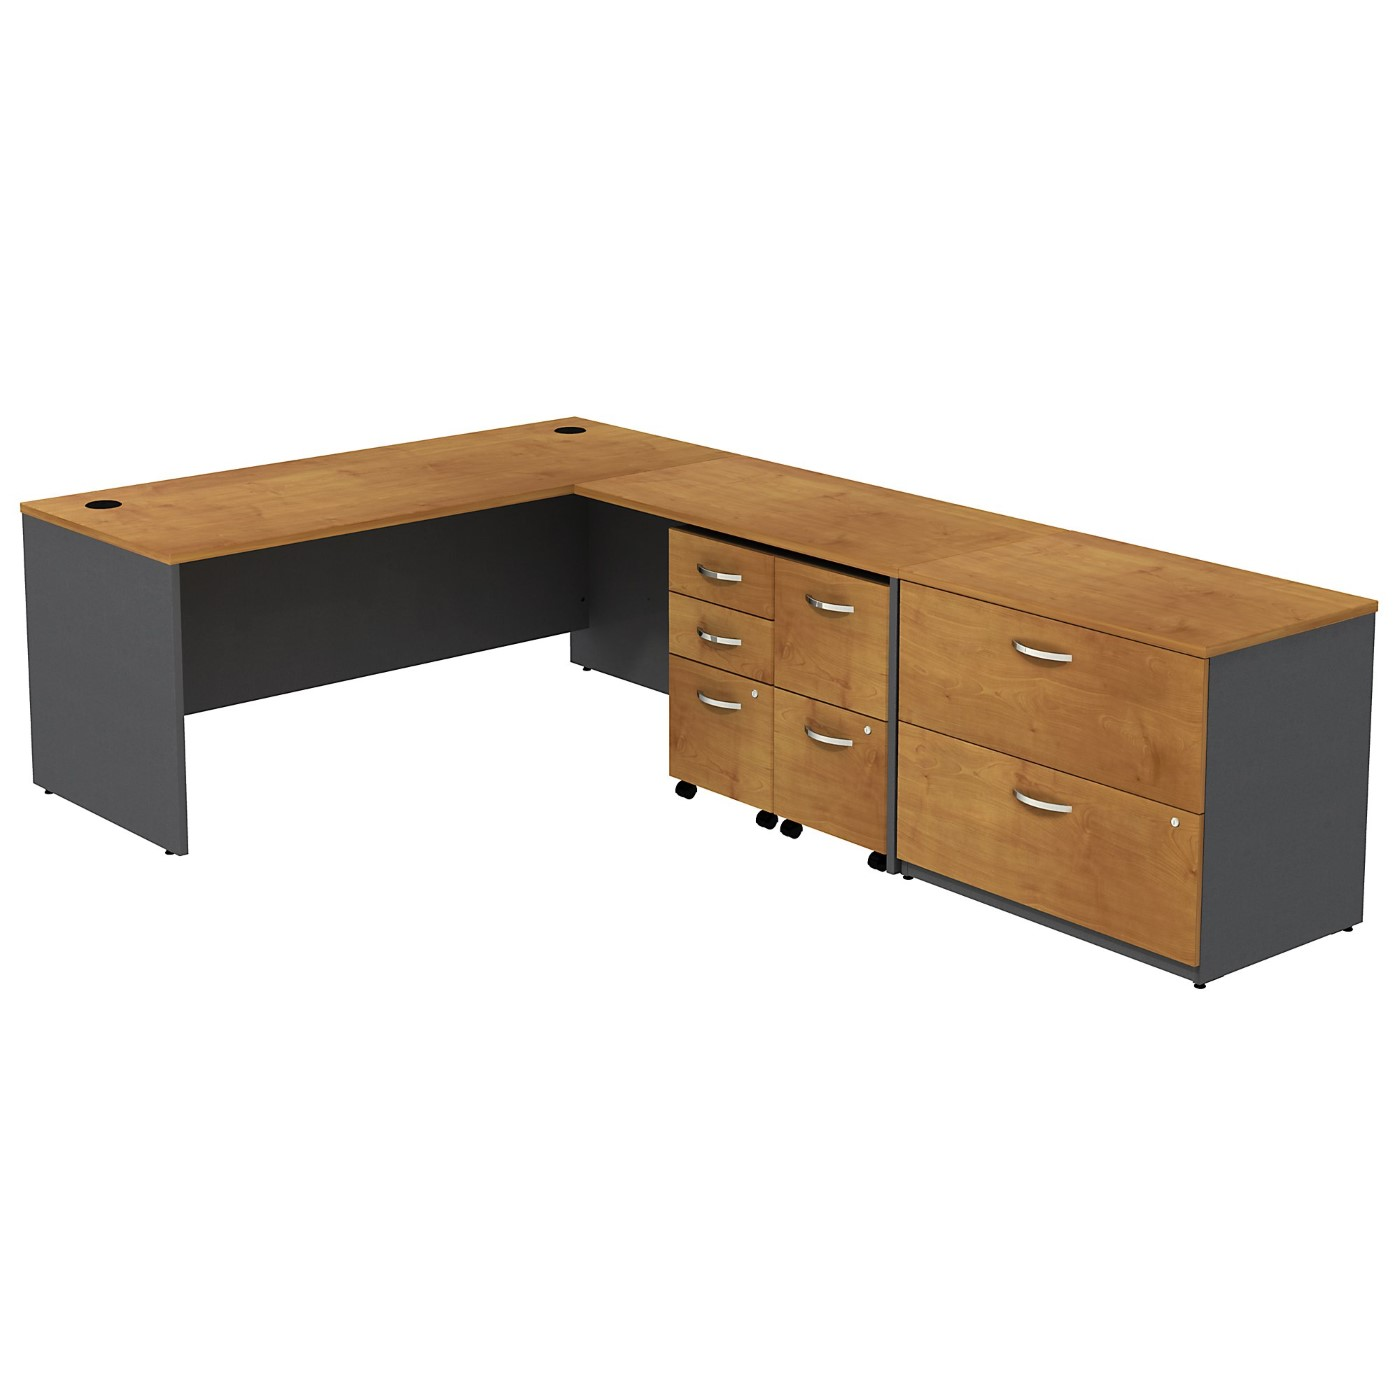 BUSH BUSINESS FURNITURE SERIES C L SHAPED DESK WITH 2 MOBILE PEDESTALS AND LATERAL FILE CABINET. FREE SHIPPING SALE DEDUCT 10% MORE ENTER '10percent' IN COUPON CODE BOX WHILE CHECKING OUT.